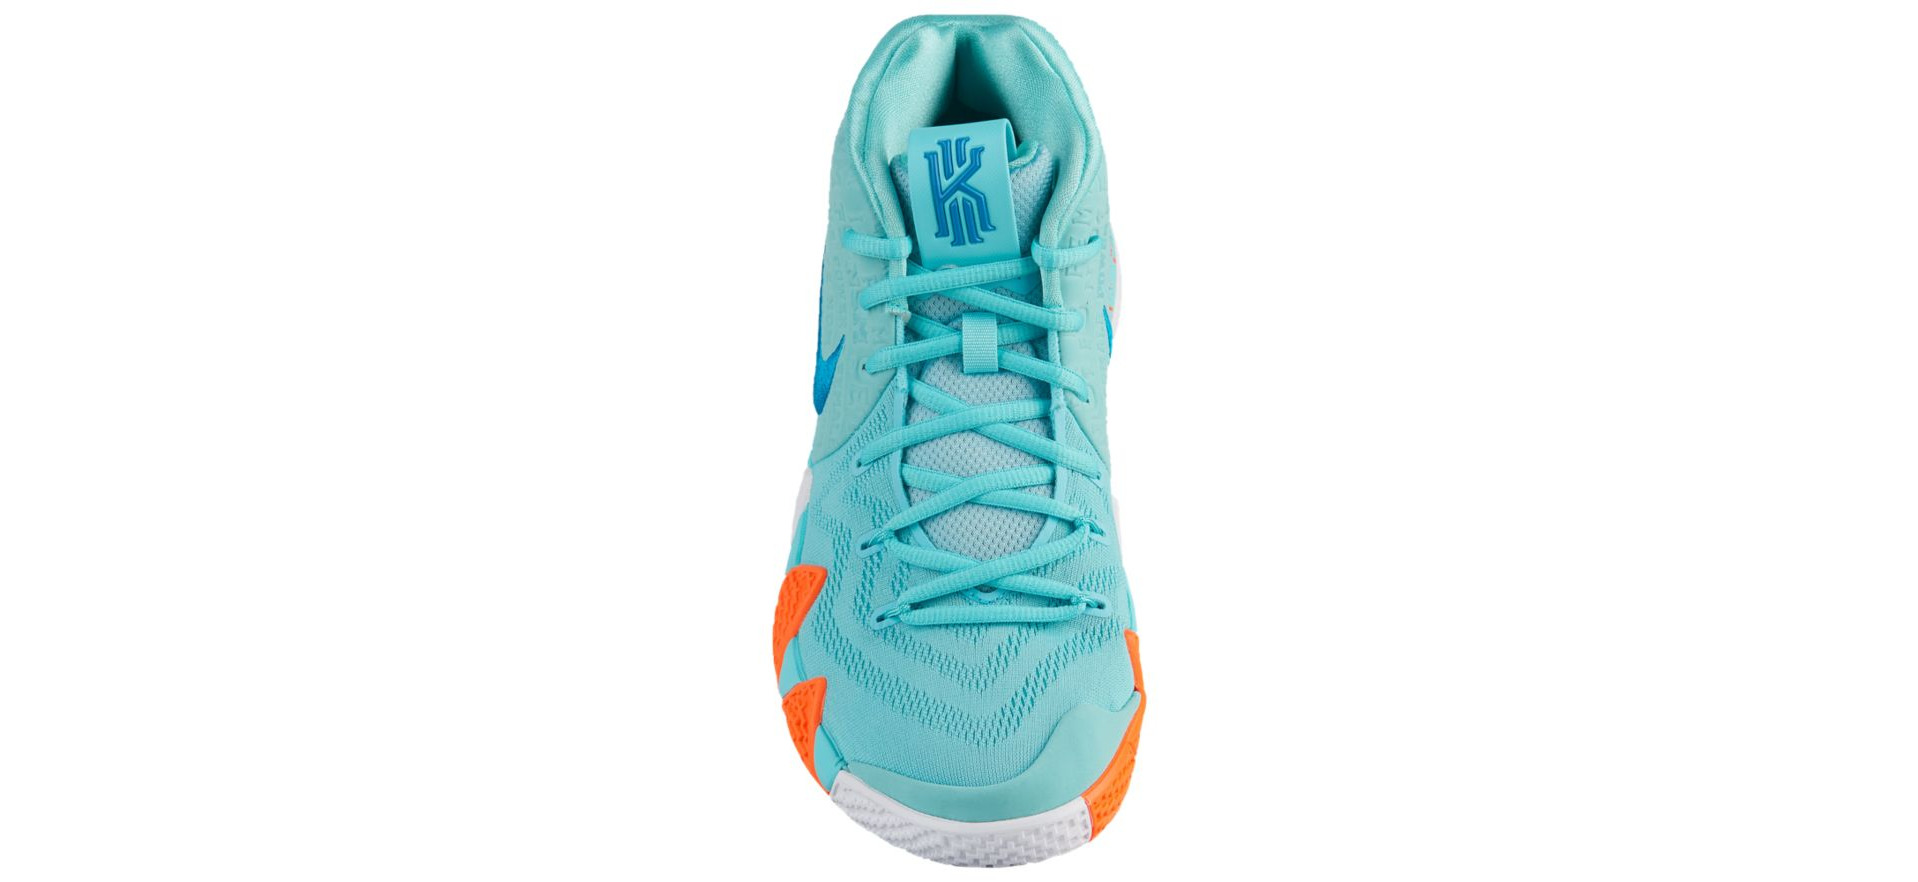 a6563a54ace nike kyrie 4 power is female top - WearTesters